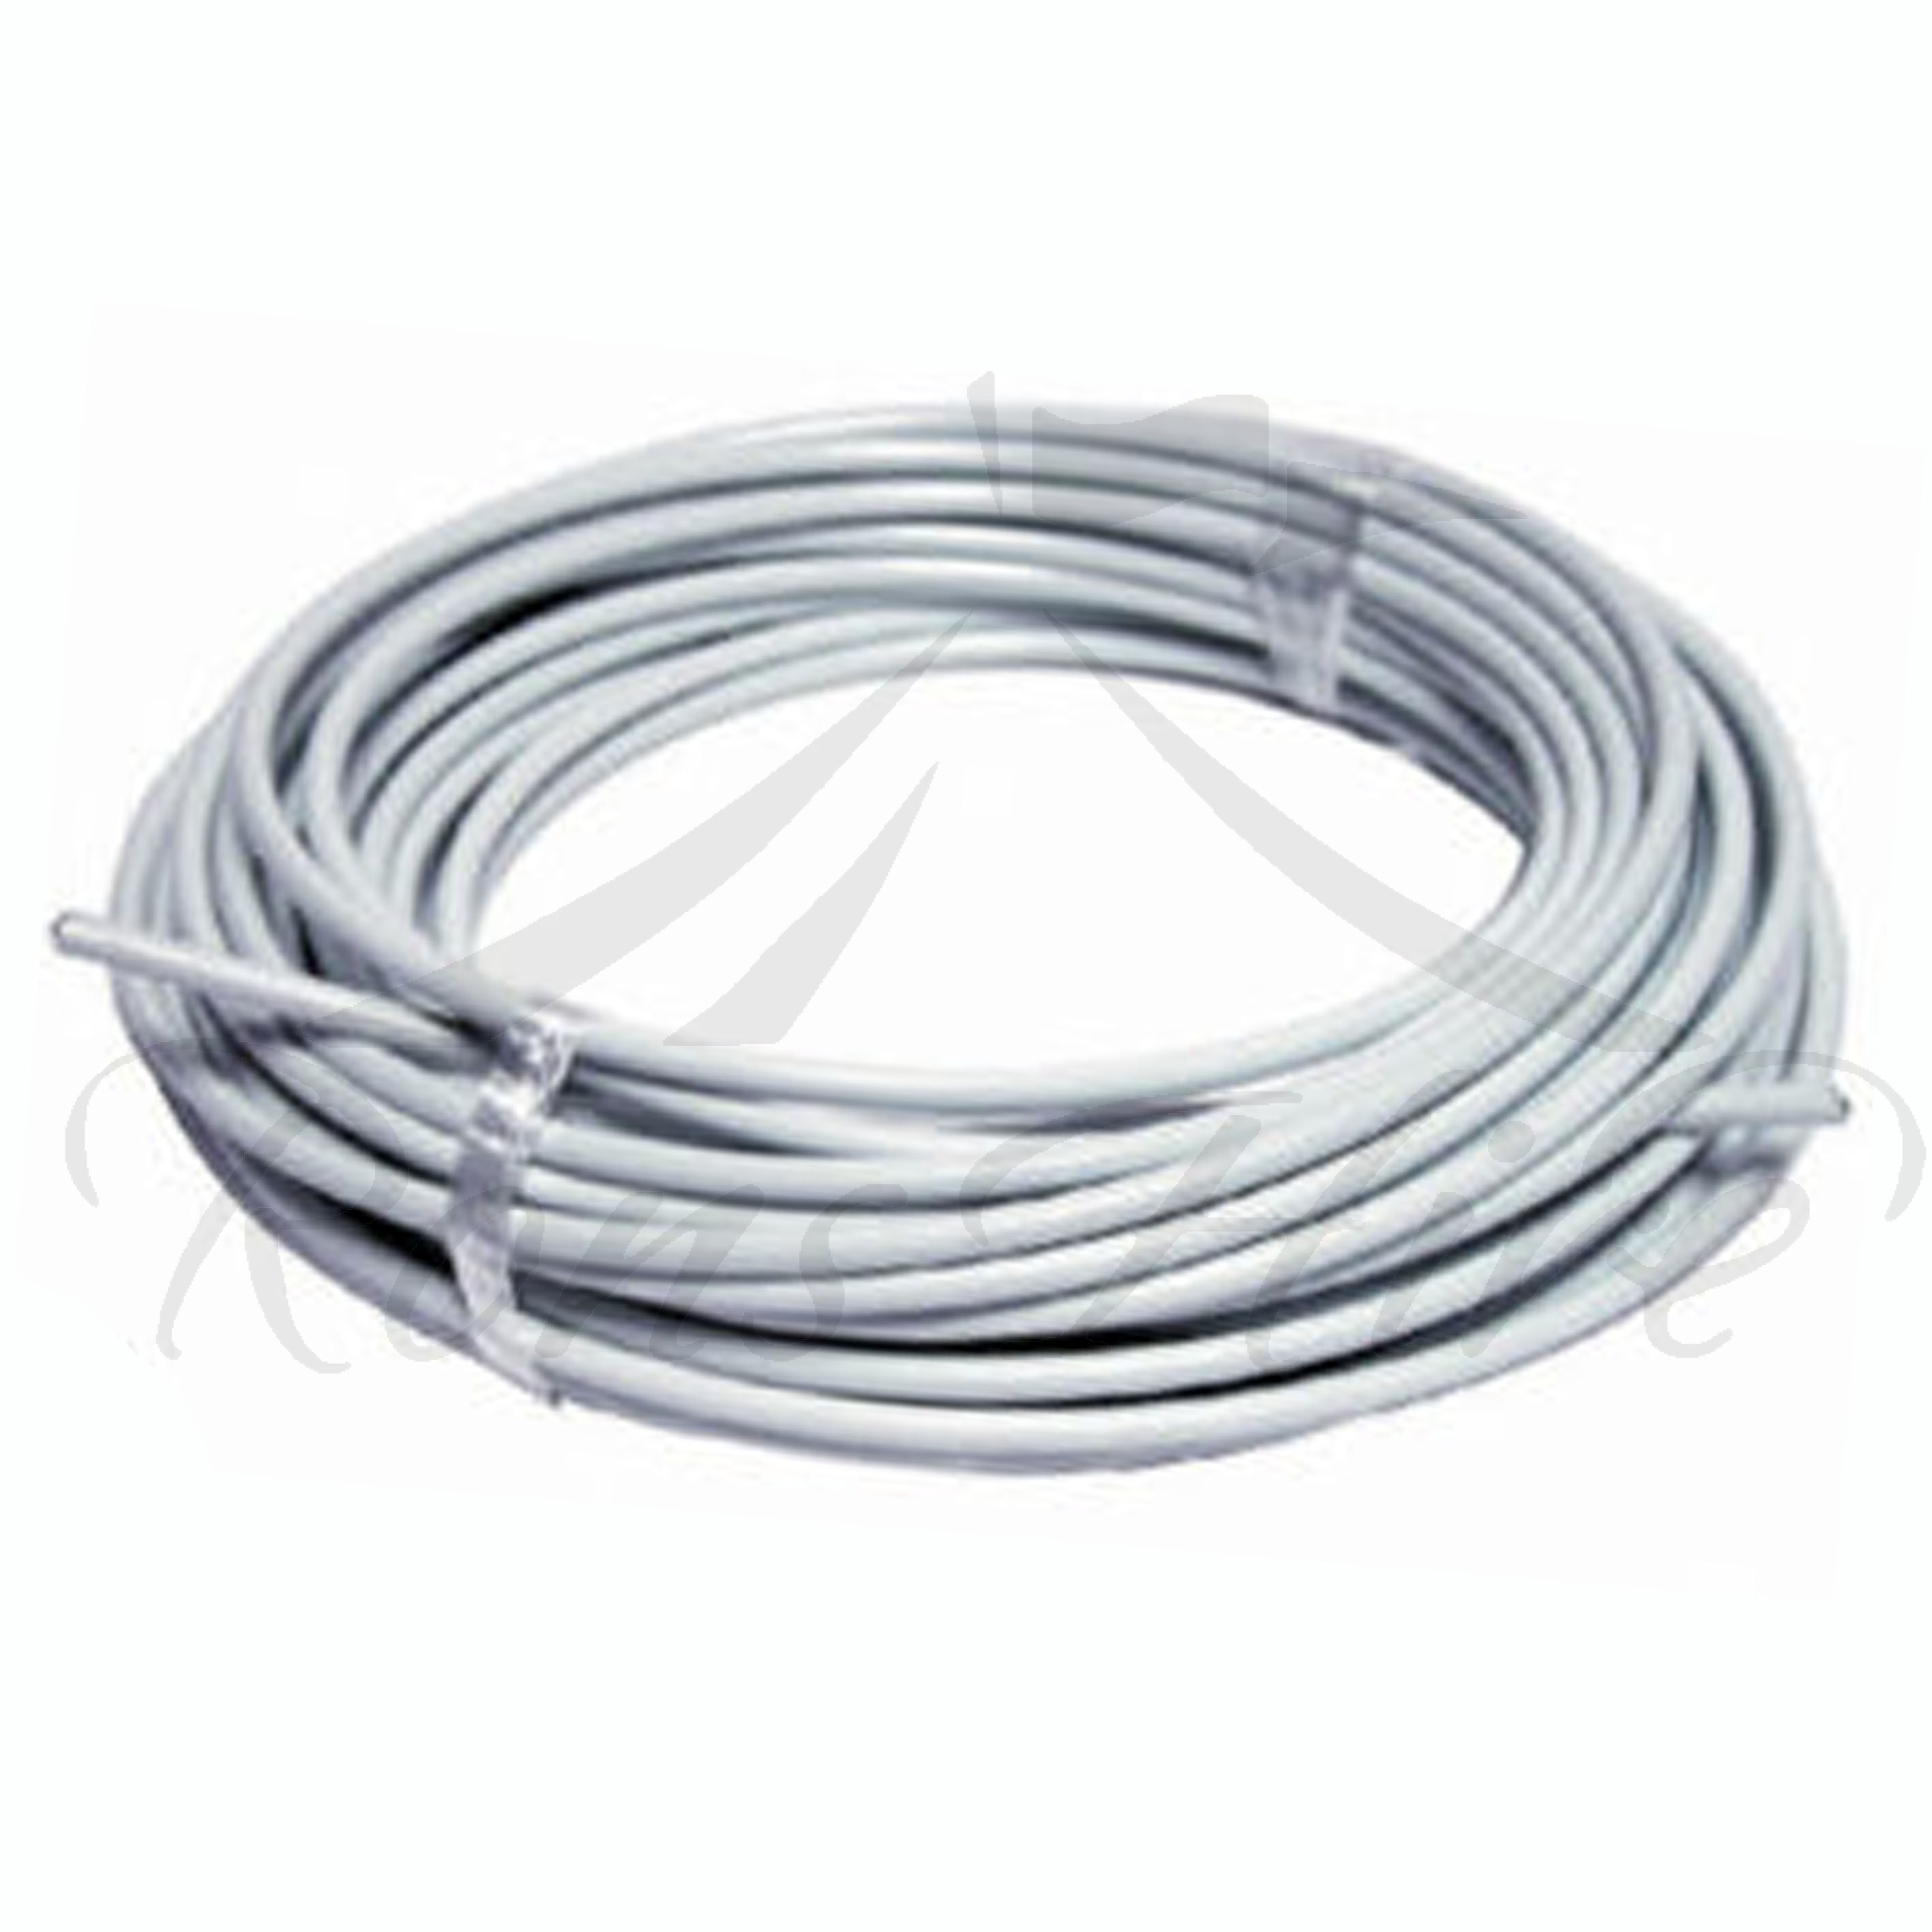 Electrical Power Cord : White cable electrical m extension cord ron s hire event